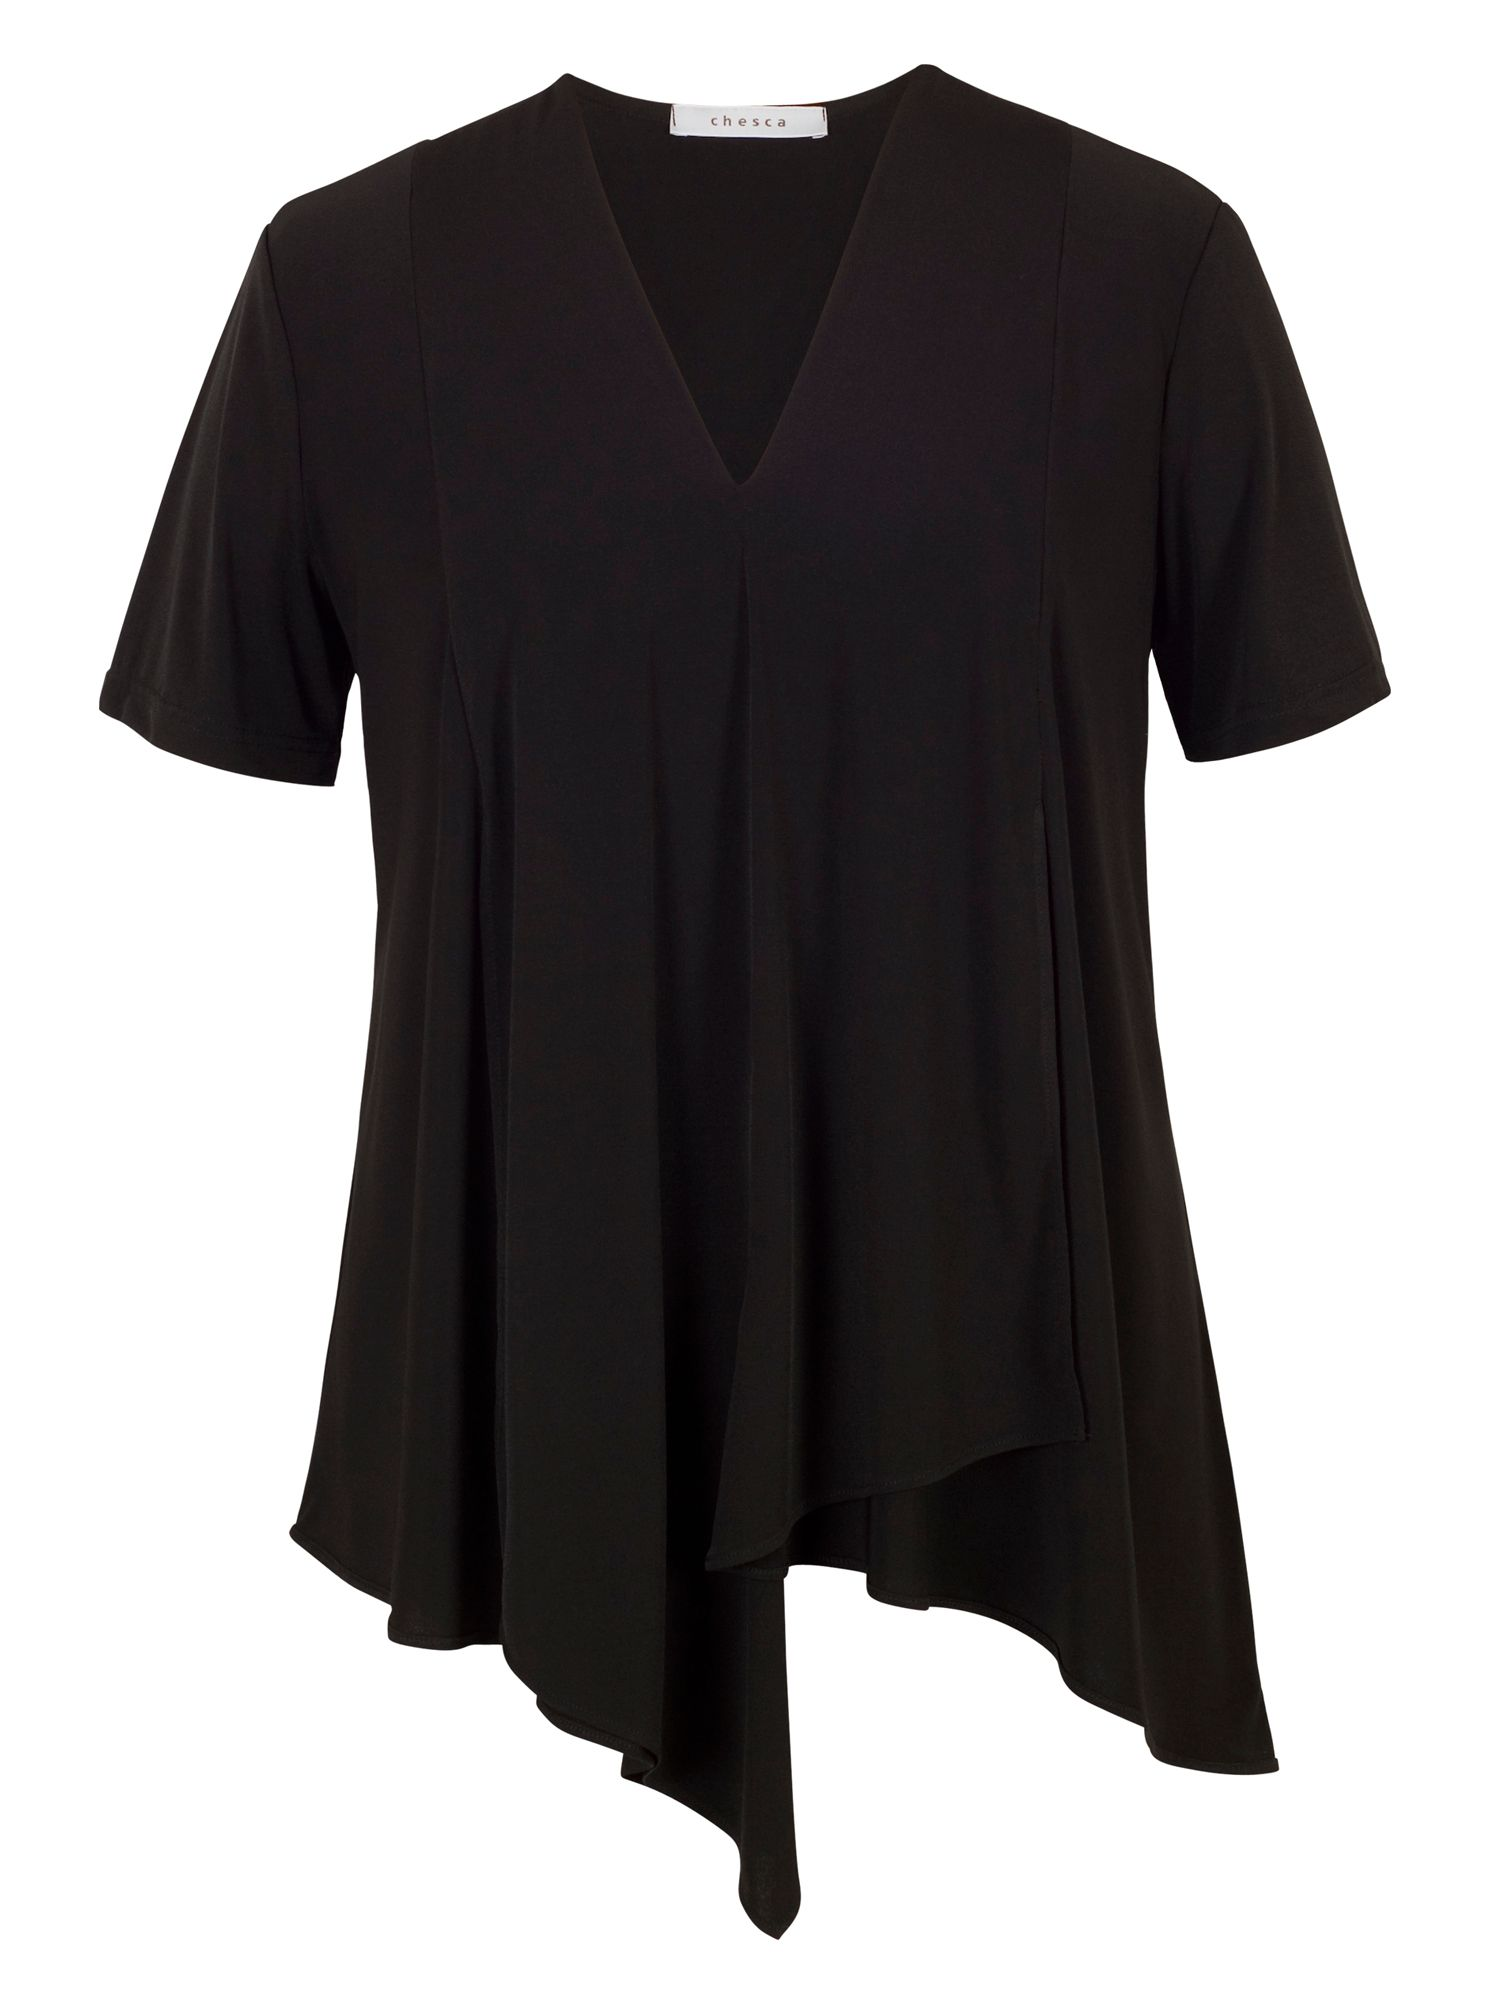 Chesca Asymmetric Layered Jersey Top, Black